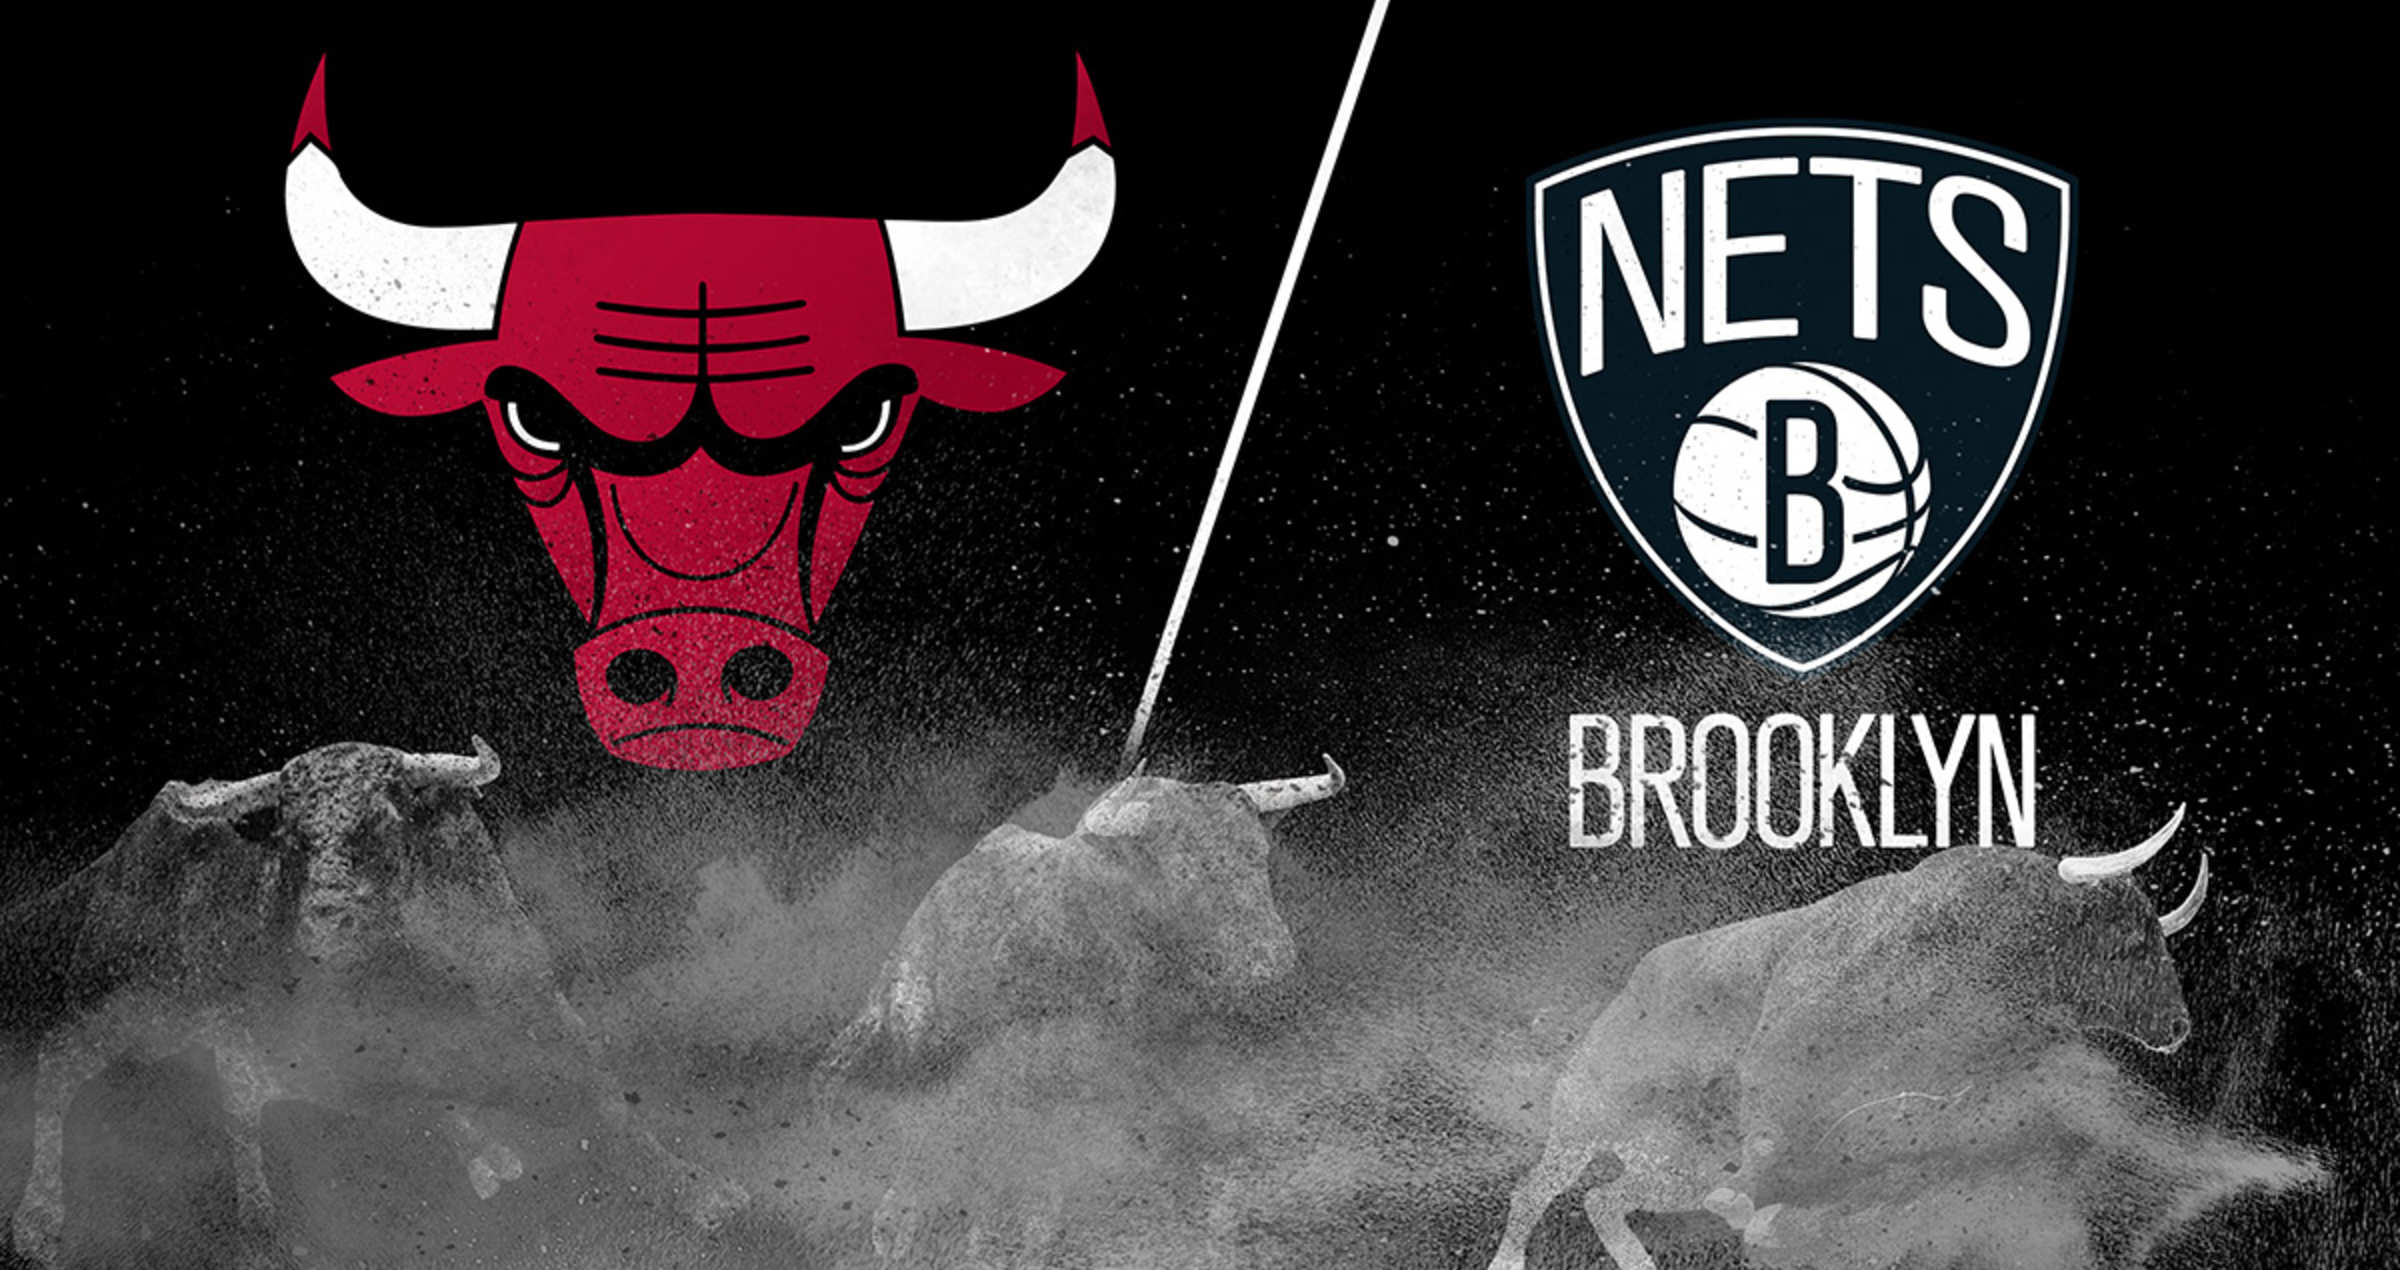 the Chicago Bulls and the Brooklyn Nets logos